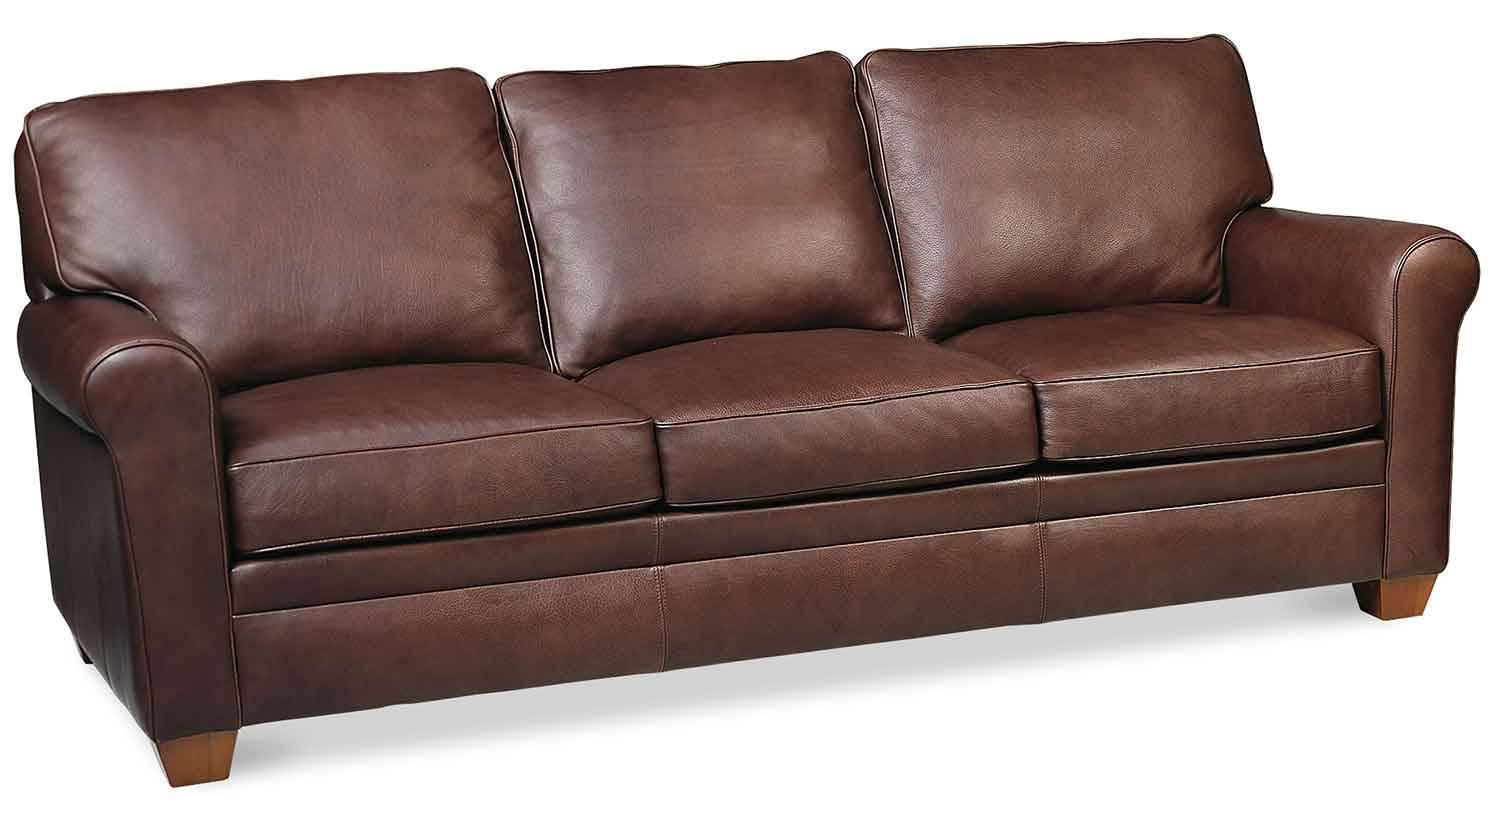 Circle Furniture - Braxton Sofa | Leather Sofas Danvers | Circle regarding Braxton Sofas (Image 13 of 15)